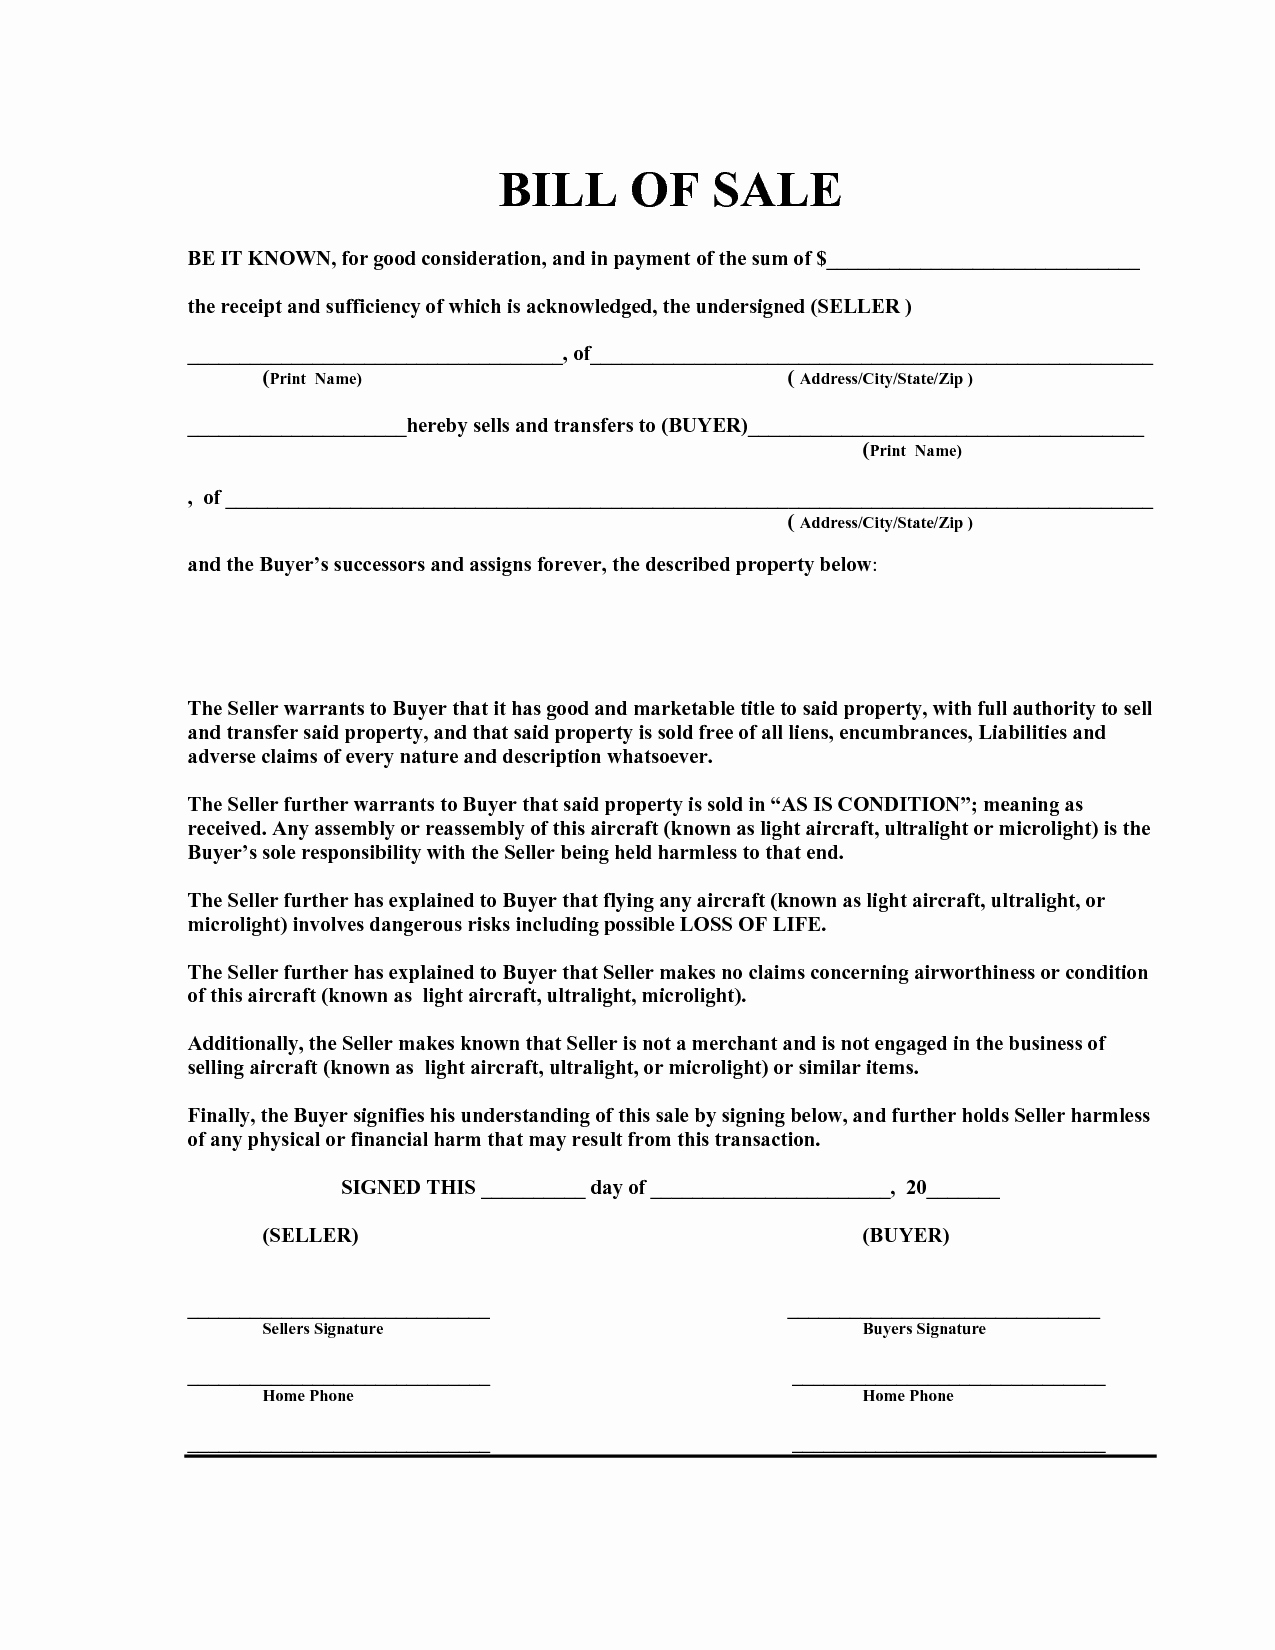 Free Bill Of Sale Template Pdf by Marymenti as is Bill